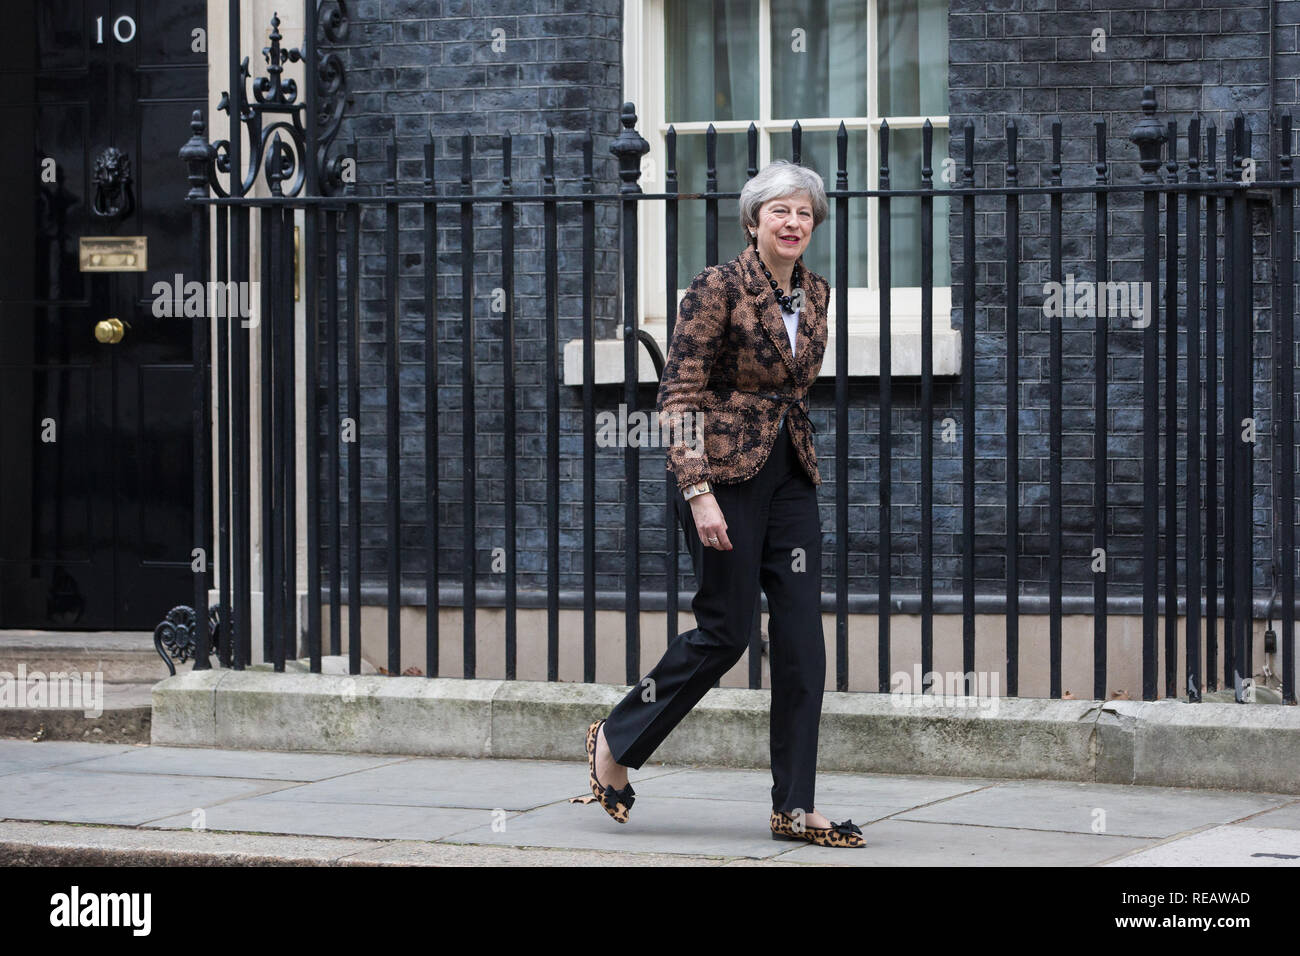 London, UK. 21st January, 2019. Prime Minister Theresa May prepares to welcome the Prime Minister of New Zealand Jacinda Ardern to 10 Downing Street for talks. Credit: Mark Kerrison/Alamy Live News - Stock Image